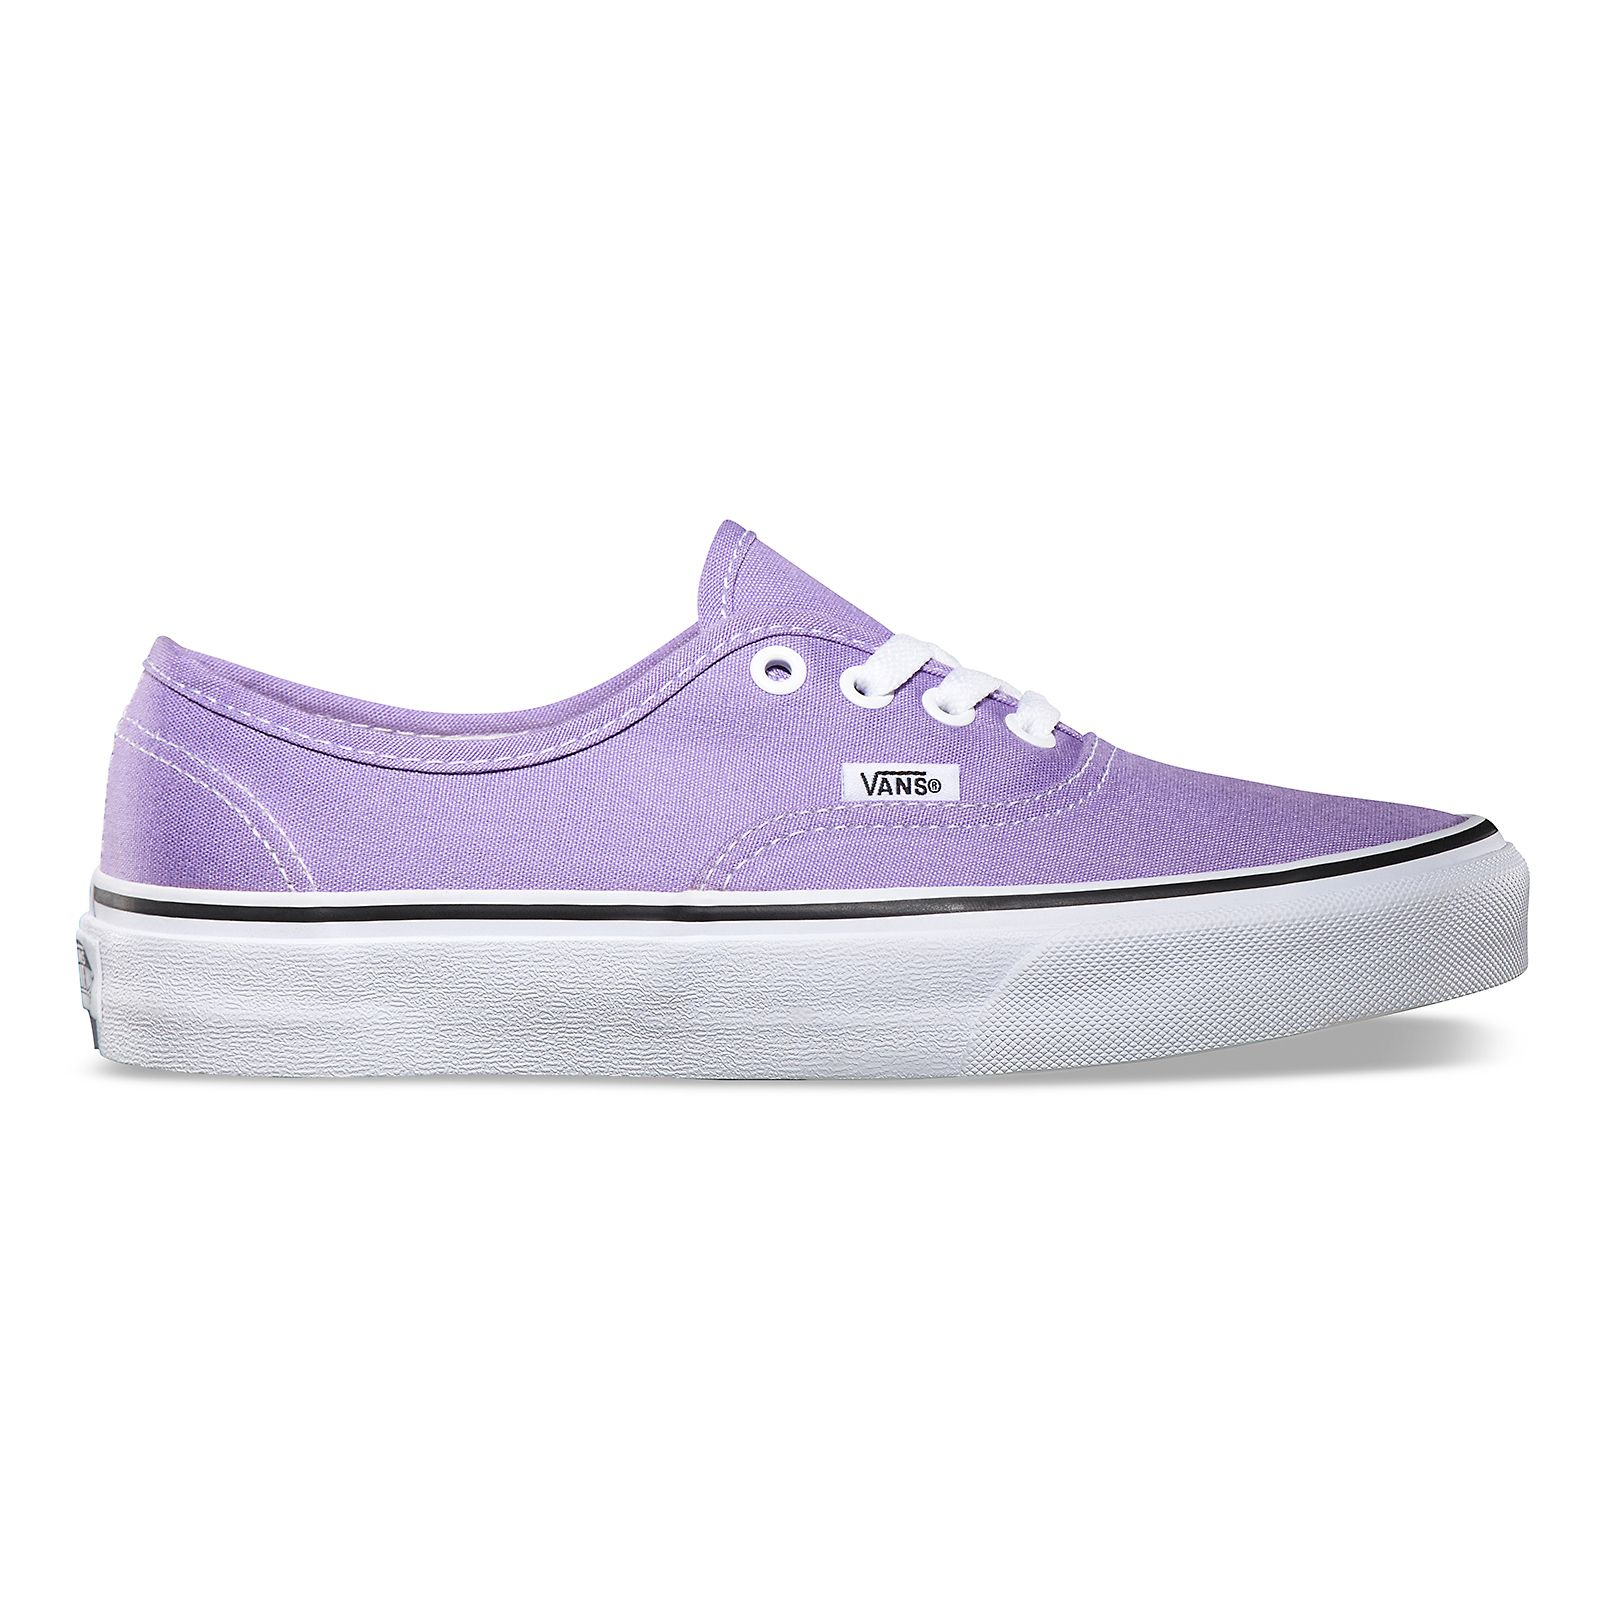 Vans Canvas Authentic in Bougainvillea/True White ... better known as light  purple